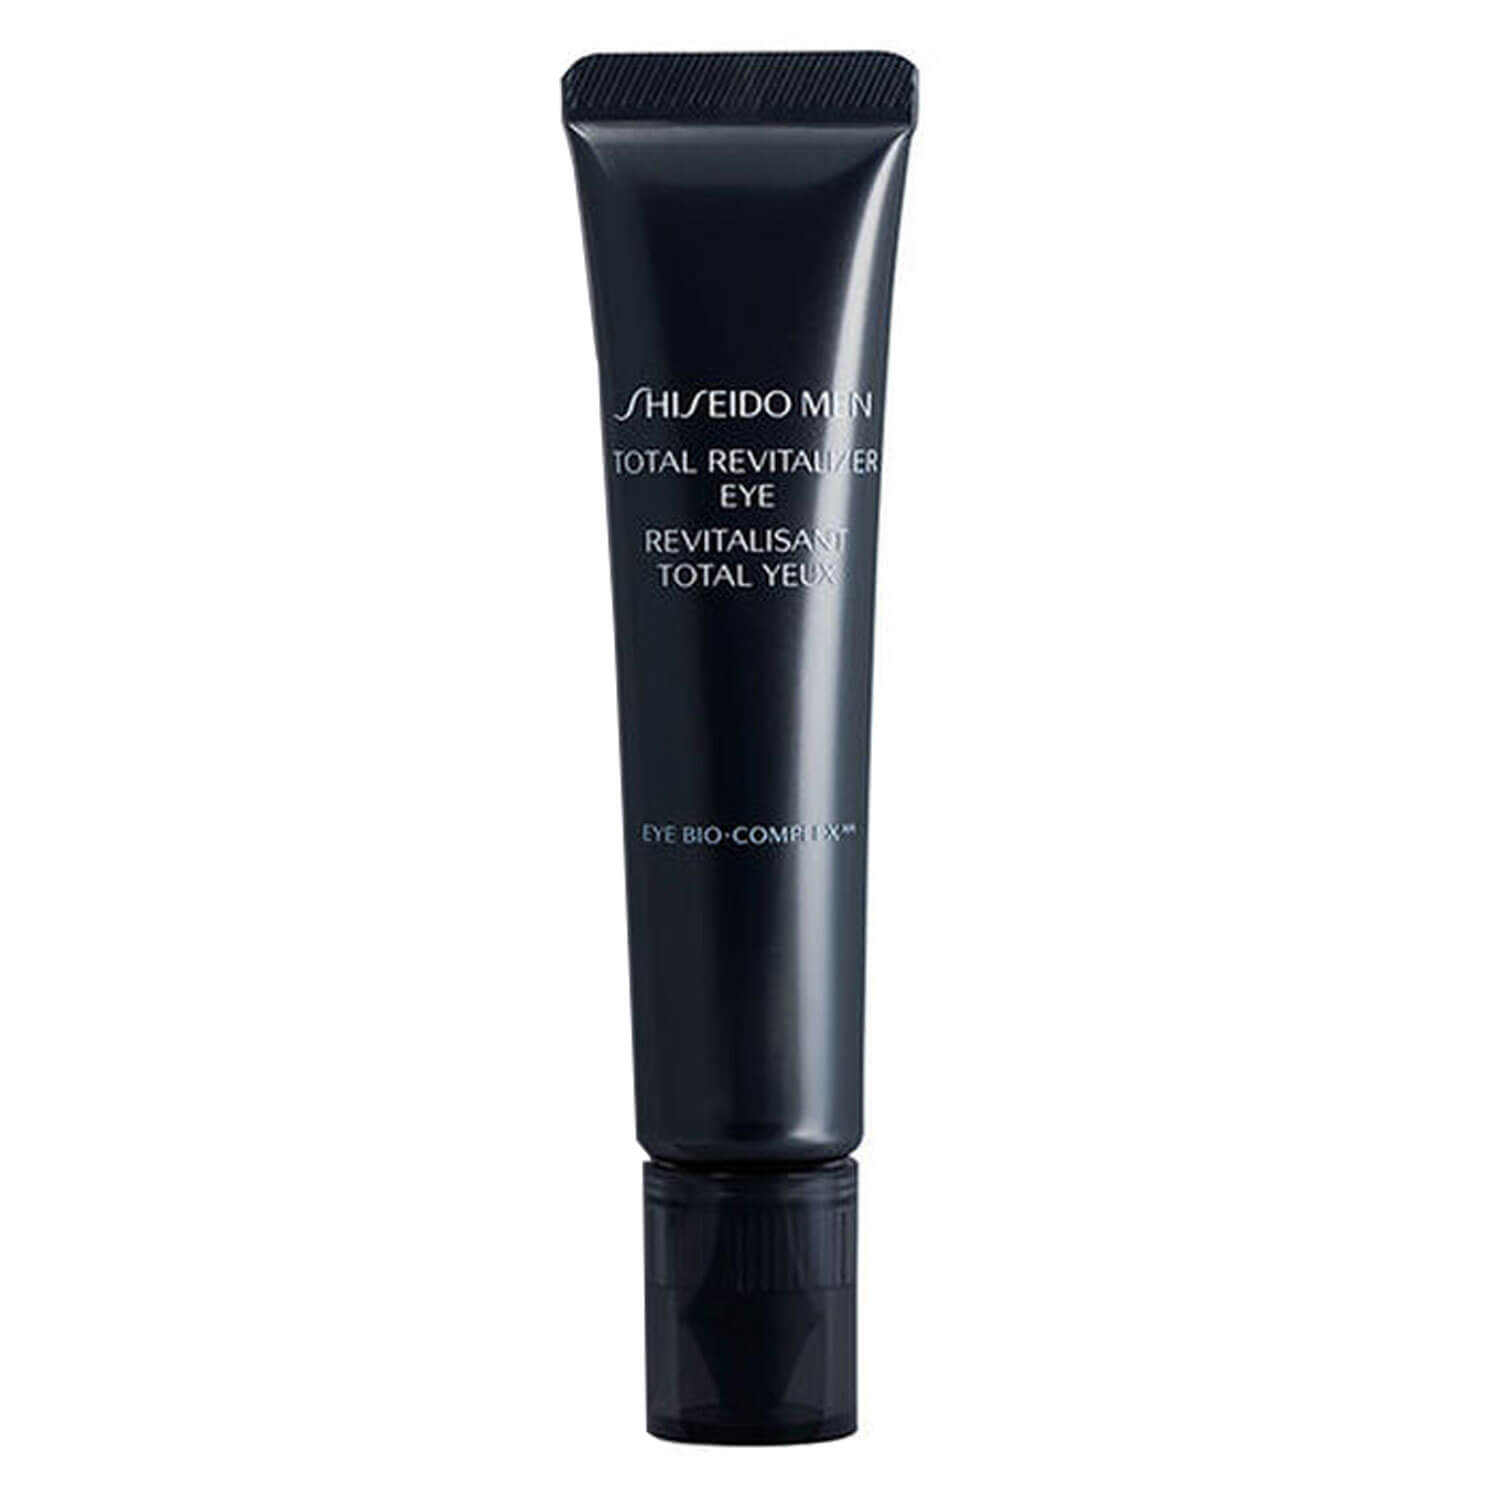 Shiseido Men - Total Revitalizer Eye